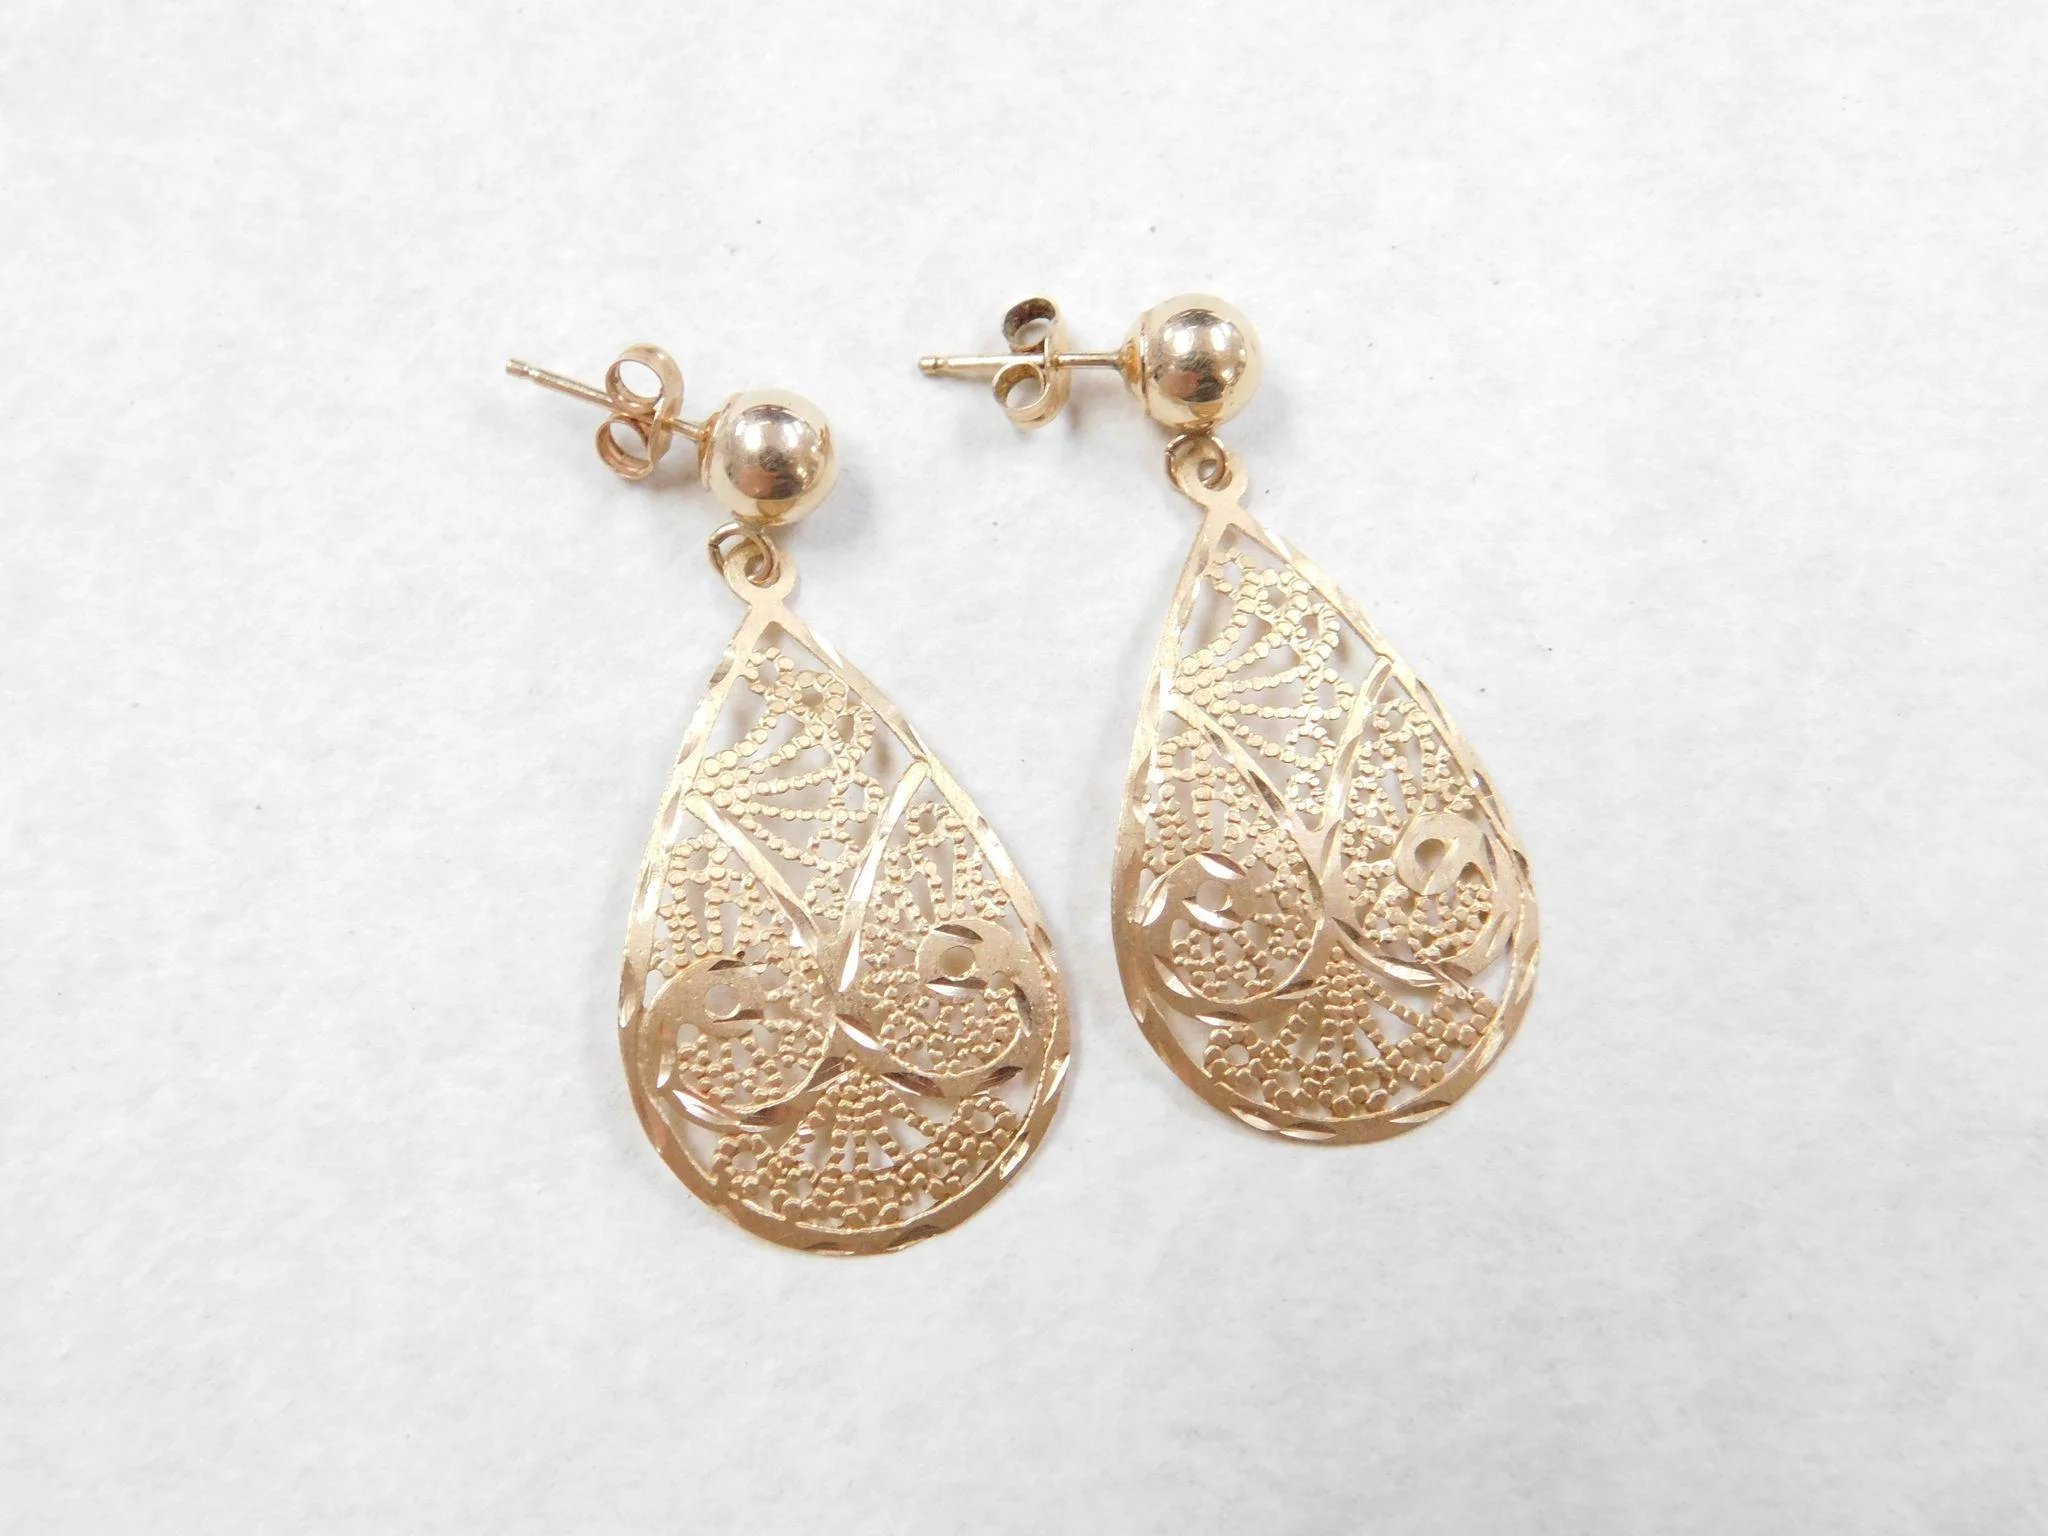 gifts product filigree go ears a modern skull earrings home decor